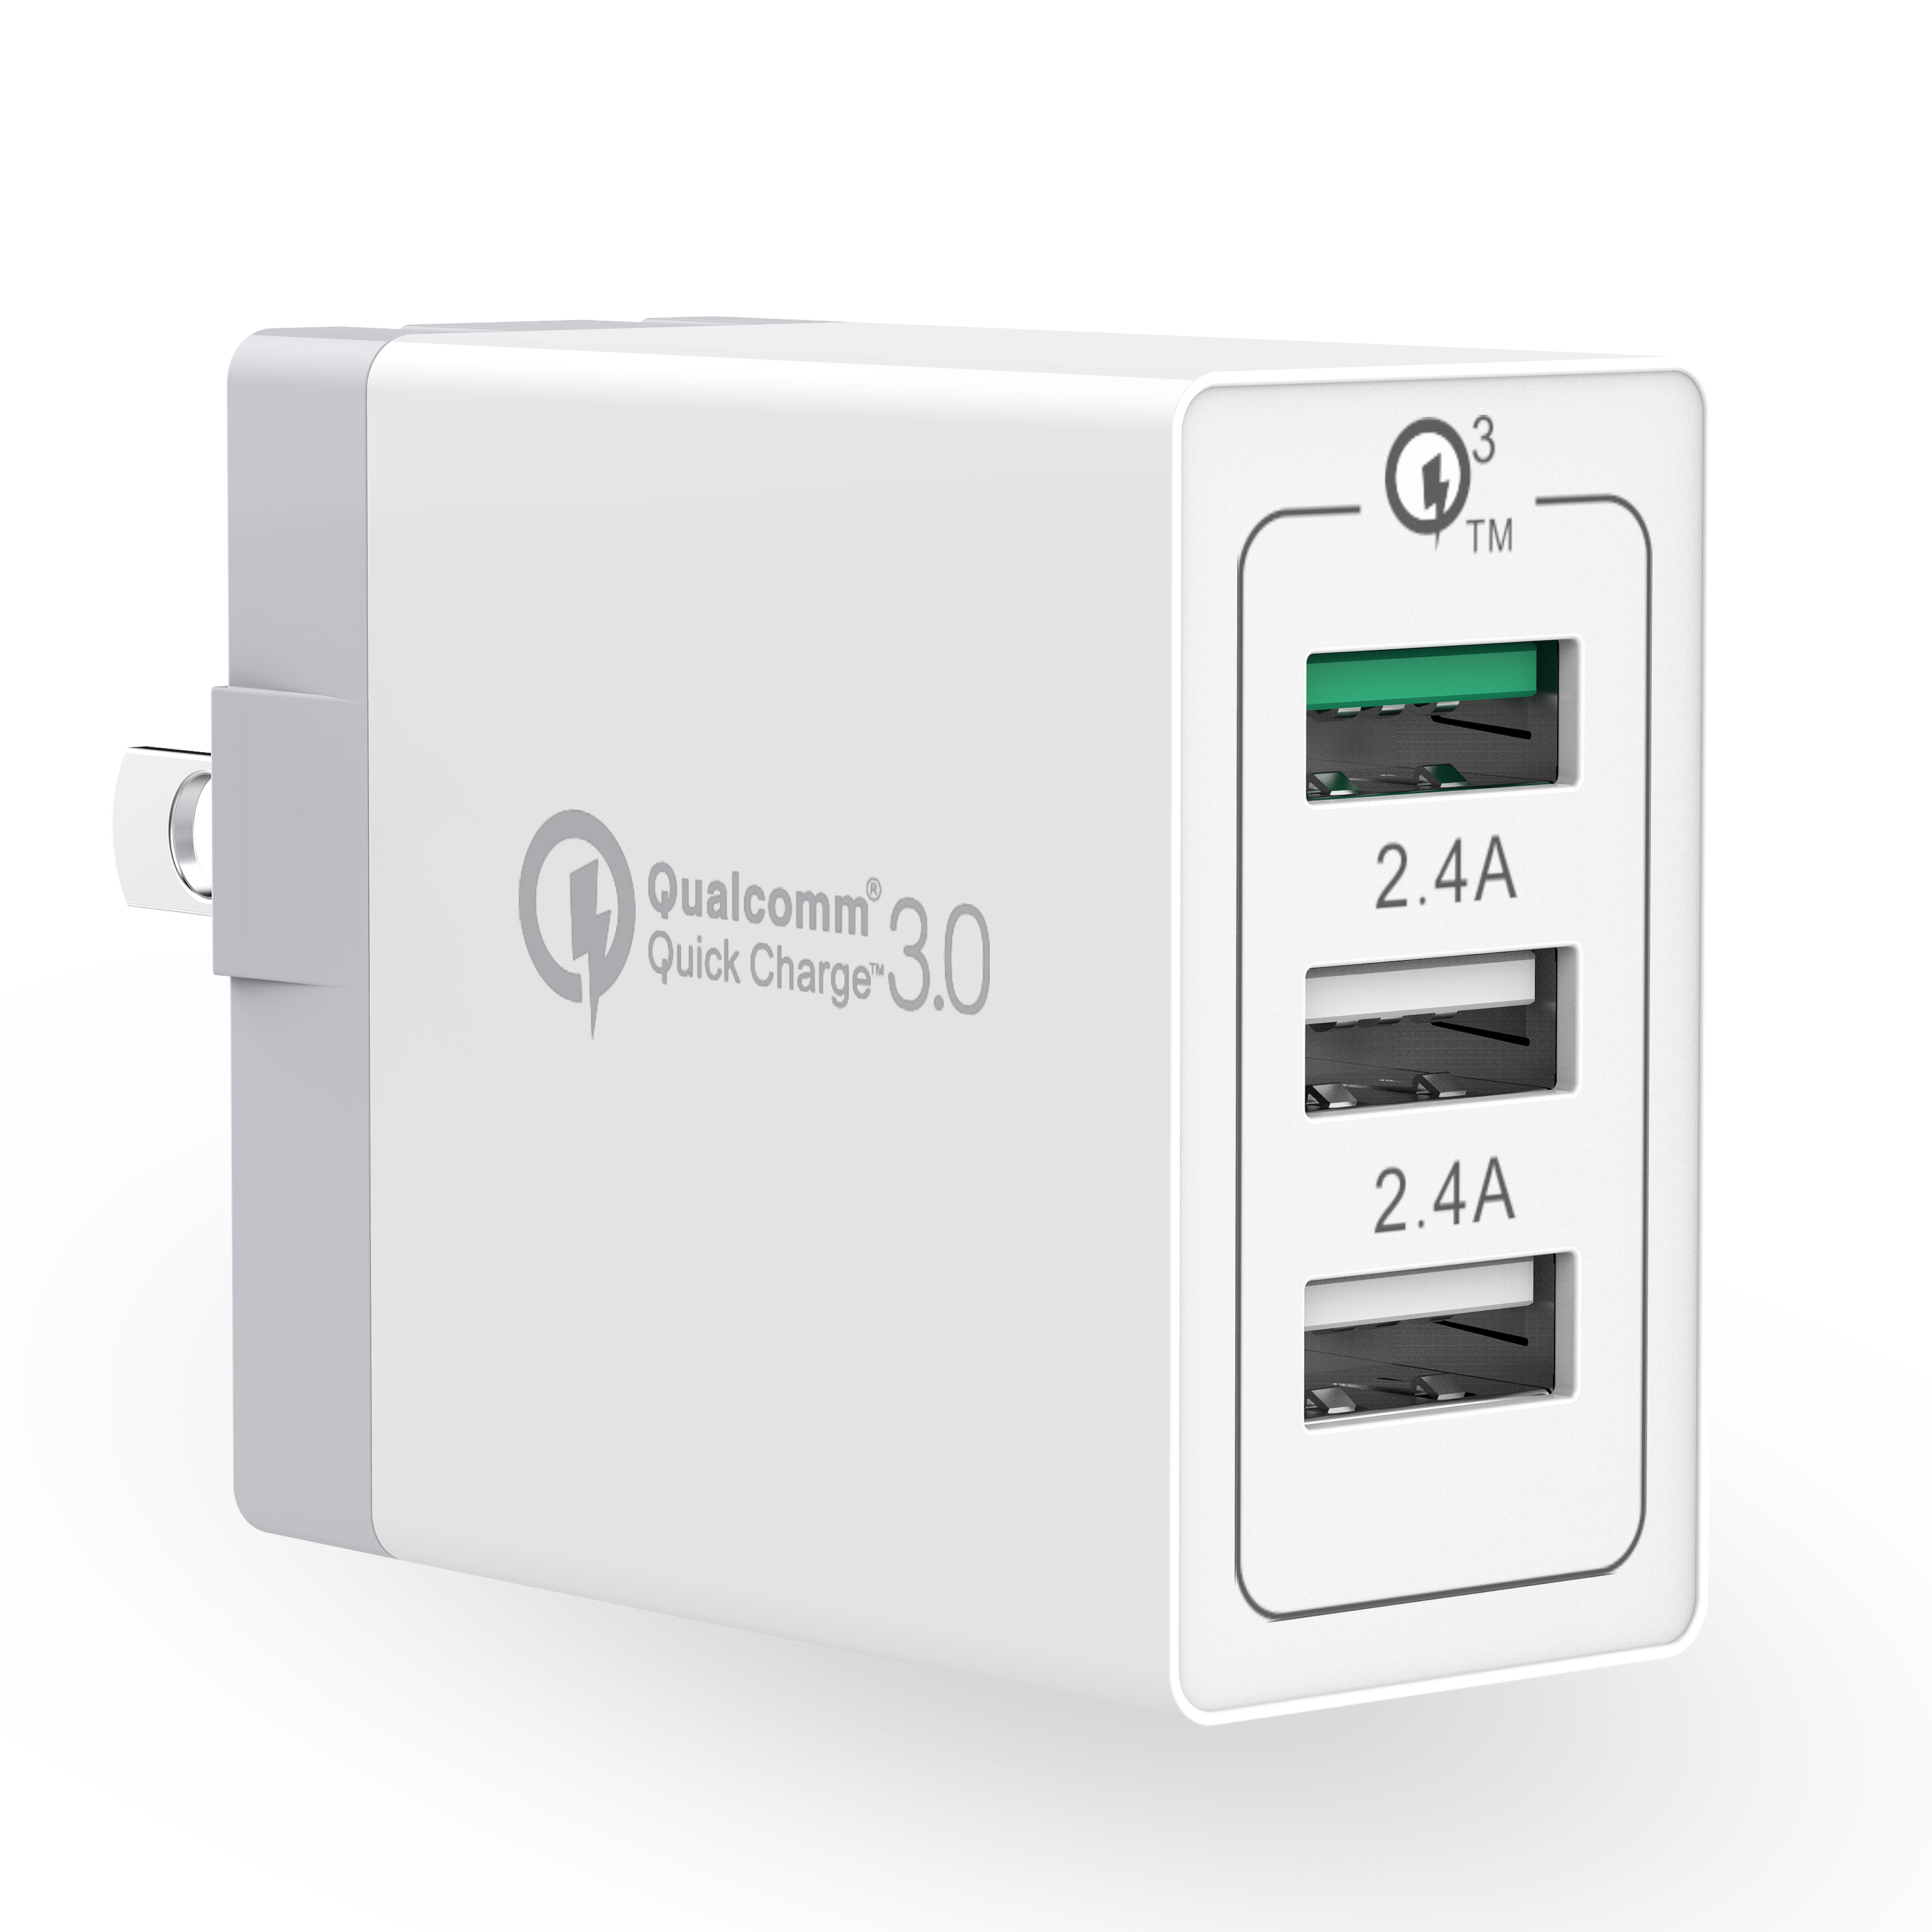 Stalion Speedy Quick Charge USB 3.0 Turbo Adaptive Rapid Fast Wall Charger (Qualcomm Certified)